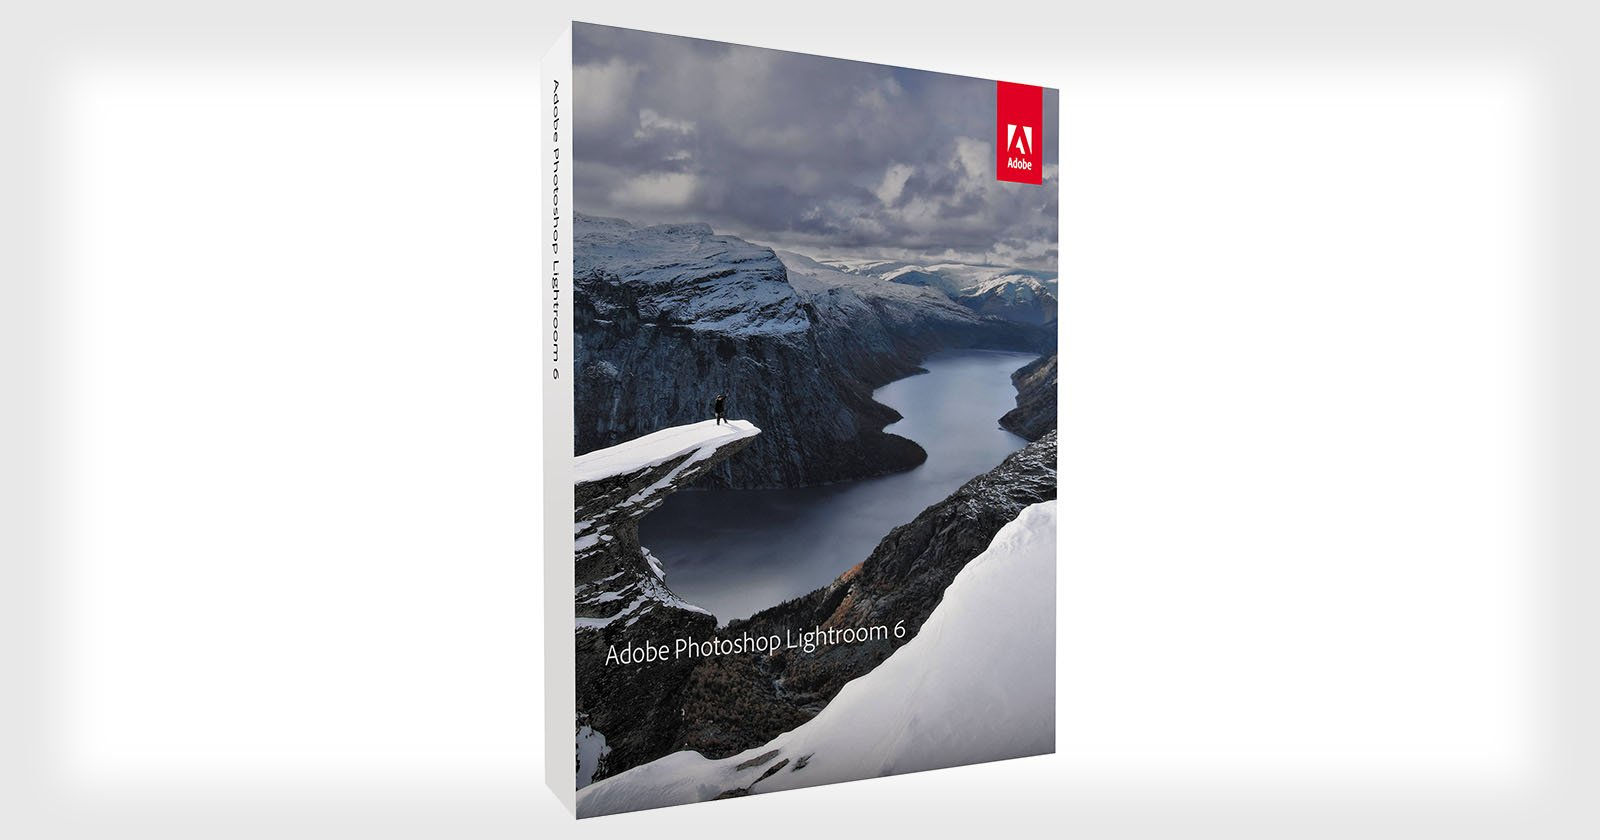 adobe photoshop lightroom 6 full version